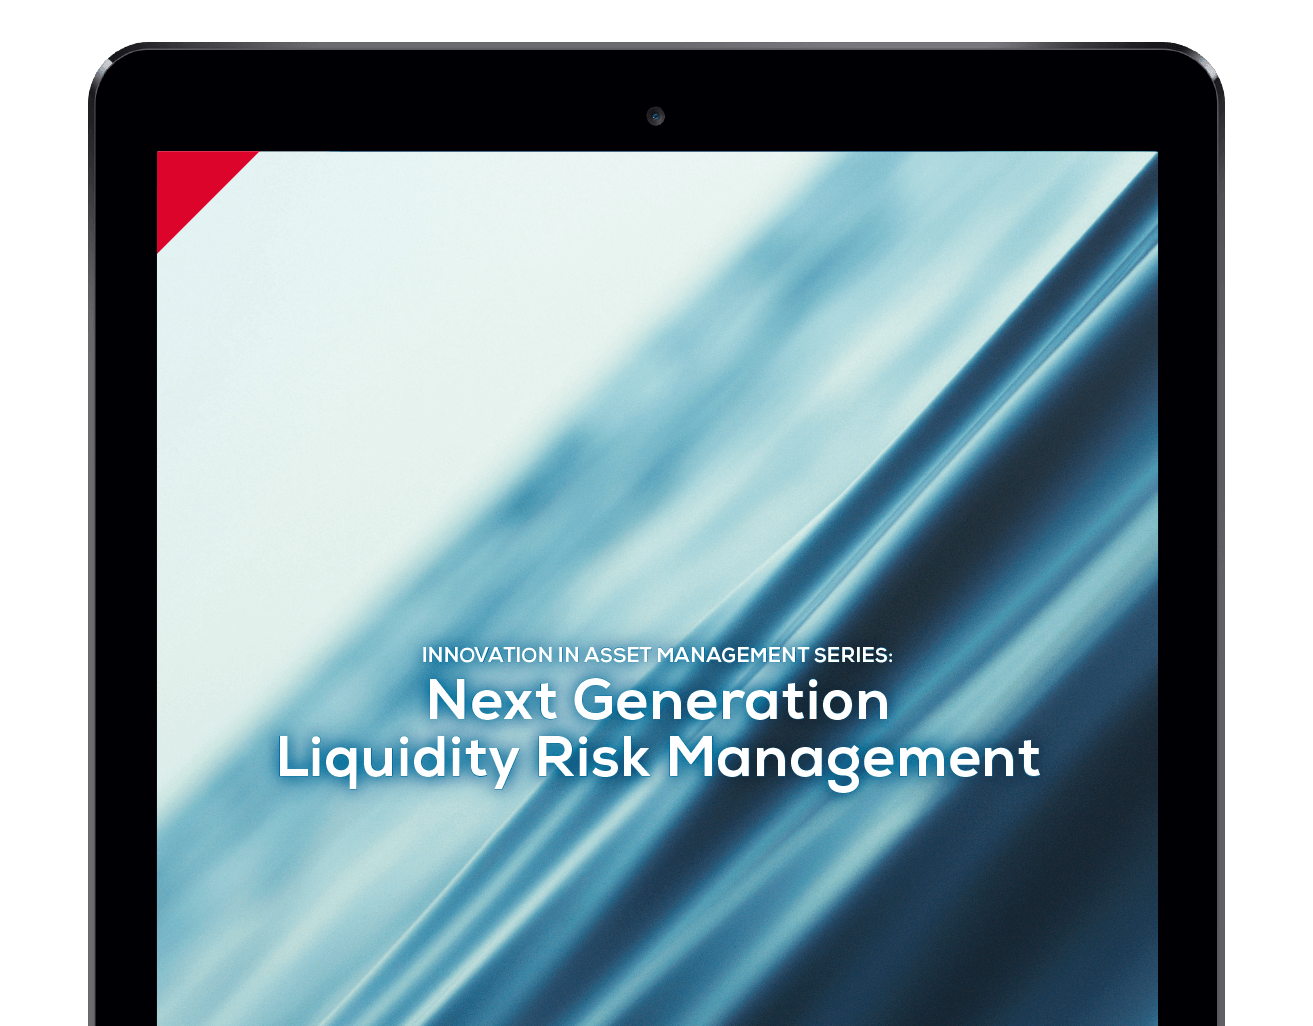 Nex Gen Liquidity Risk Management - ipad